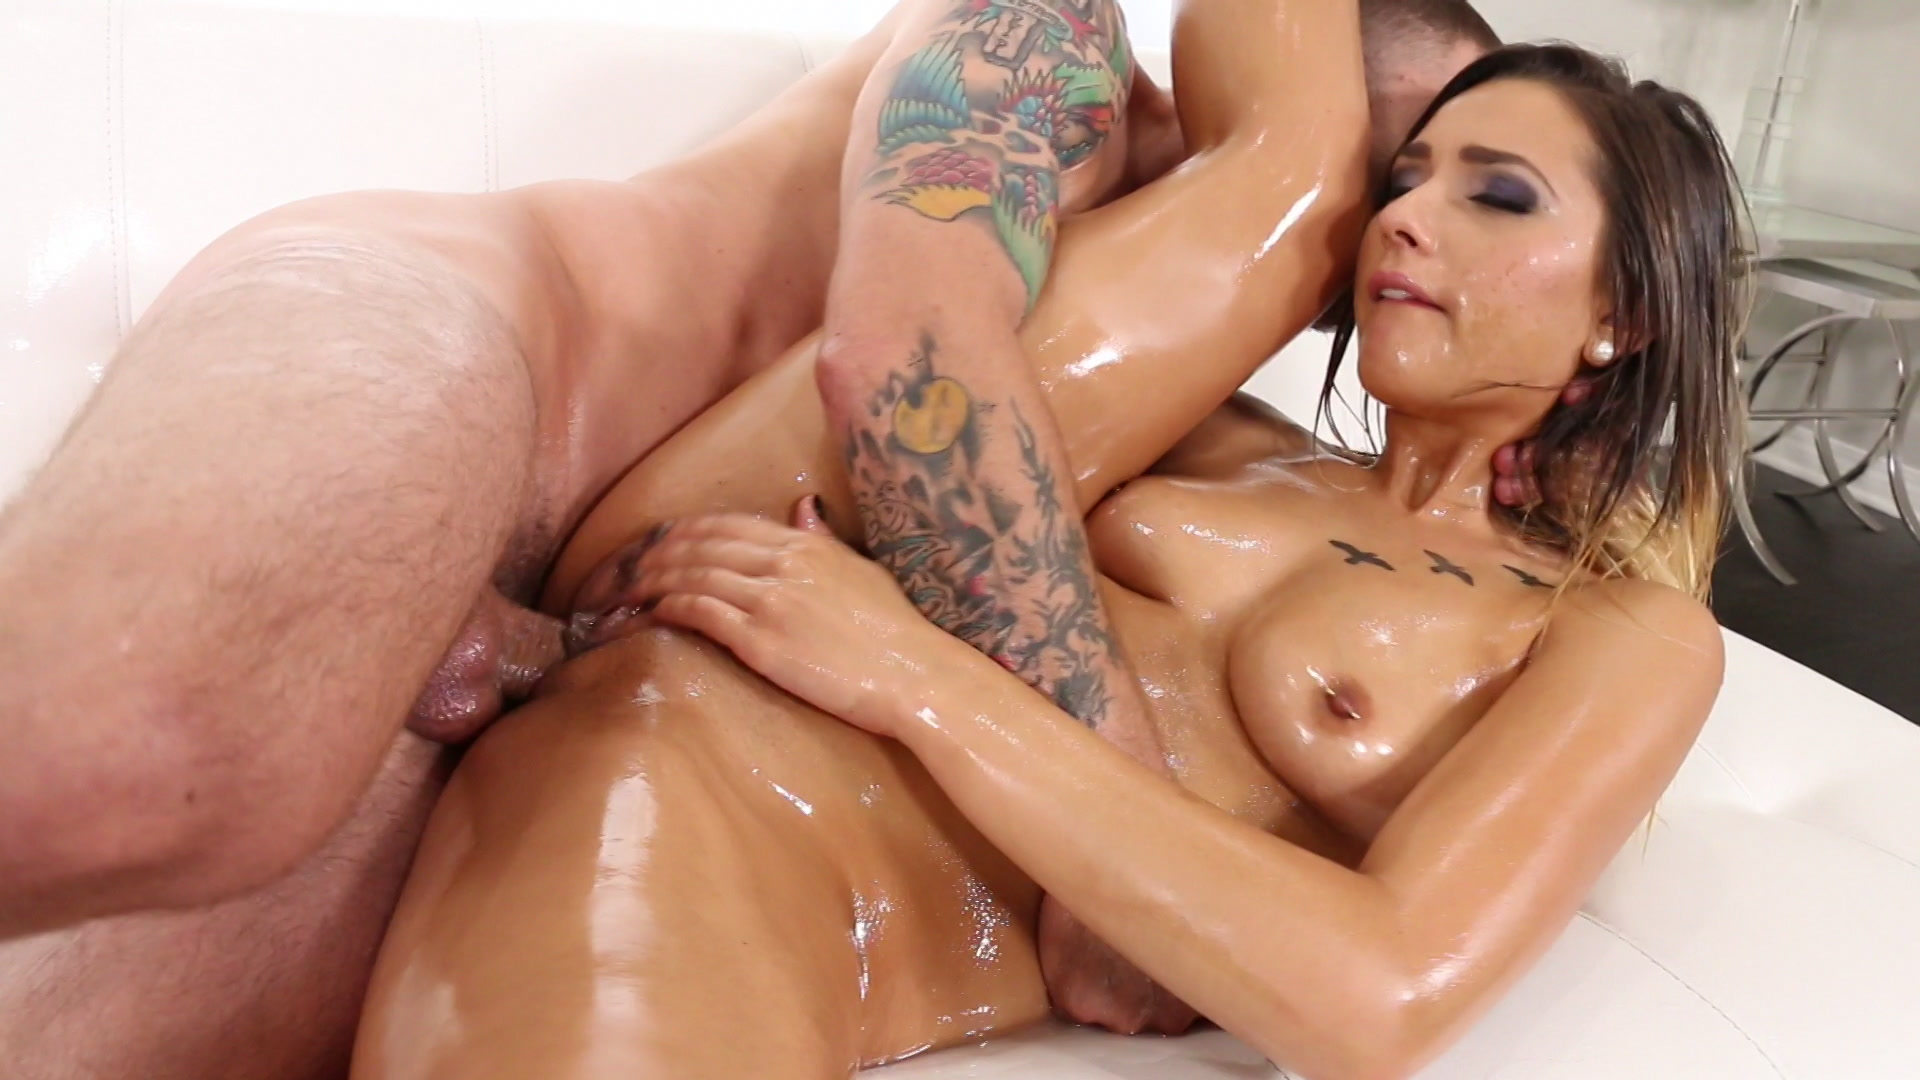 Daphne Rosen Oiled Up Gets Her Asshole Ripped